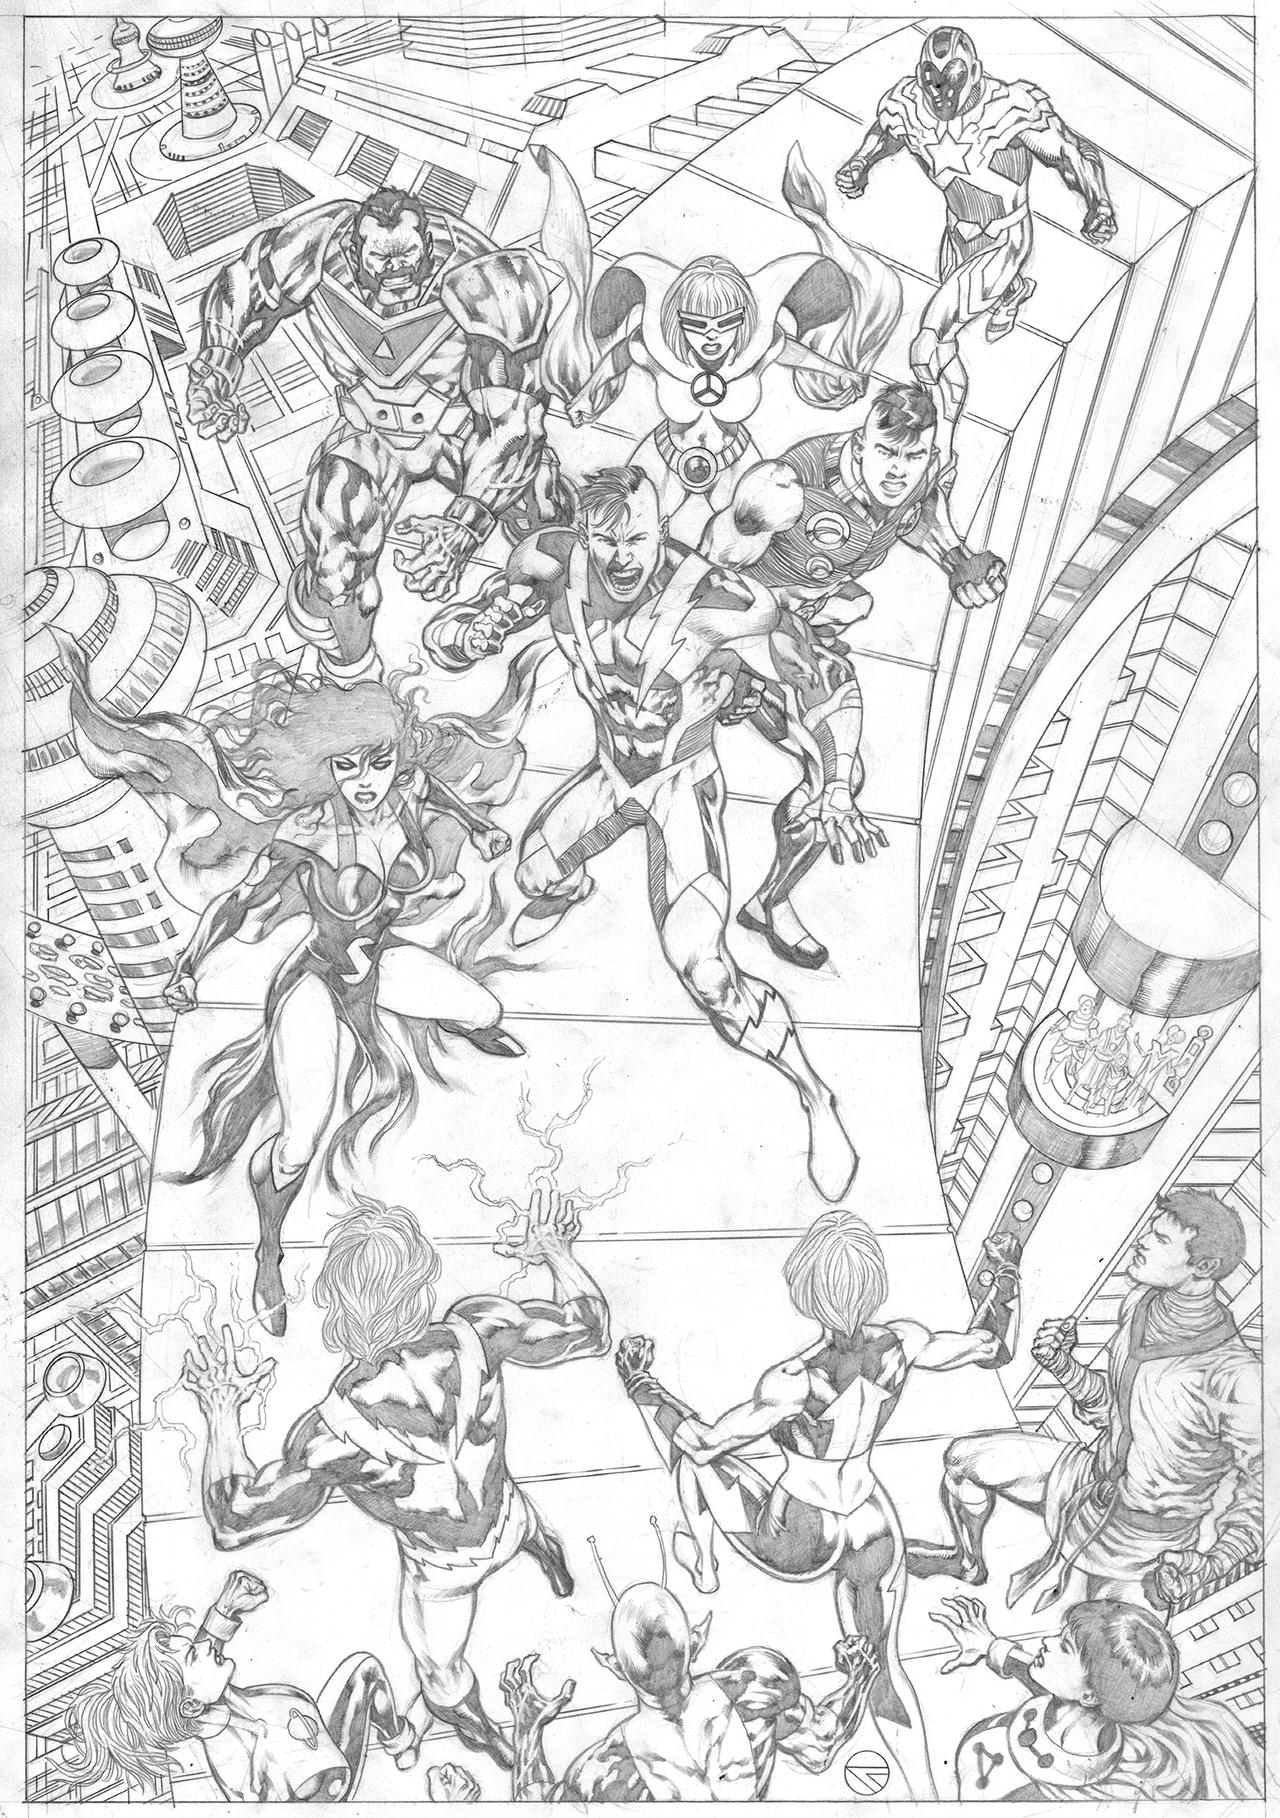 Legion of super-heroes commission